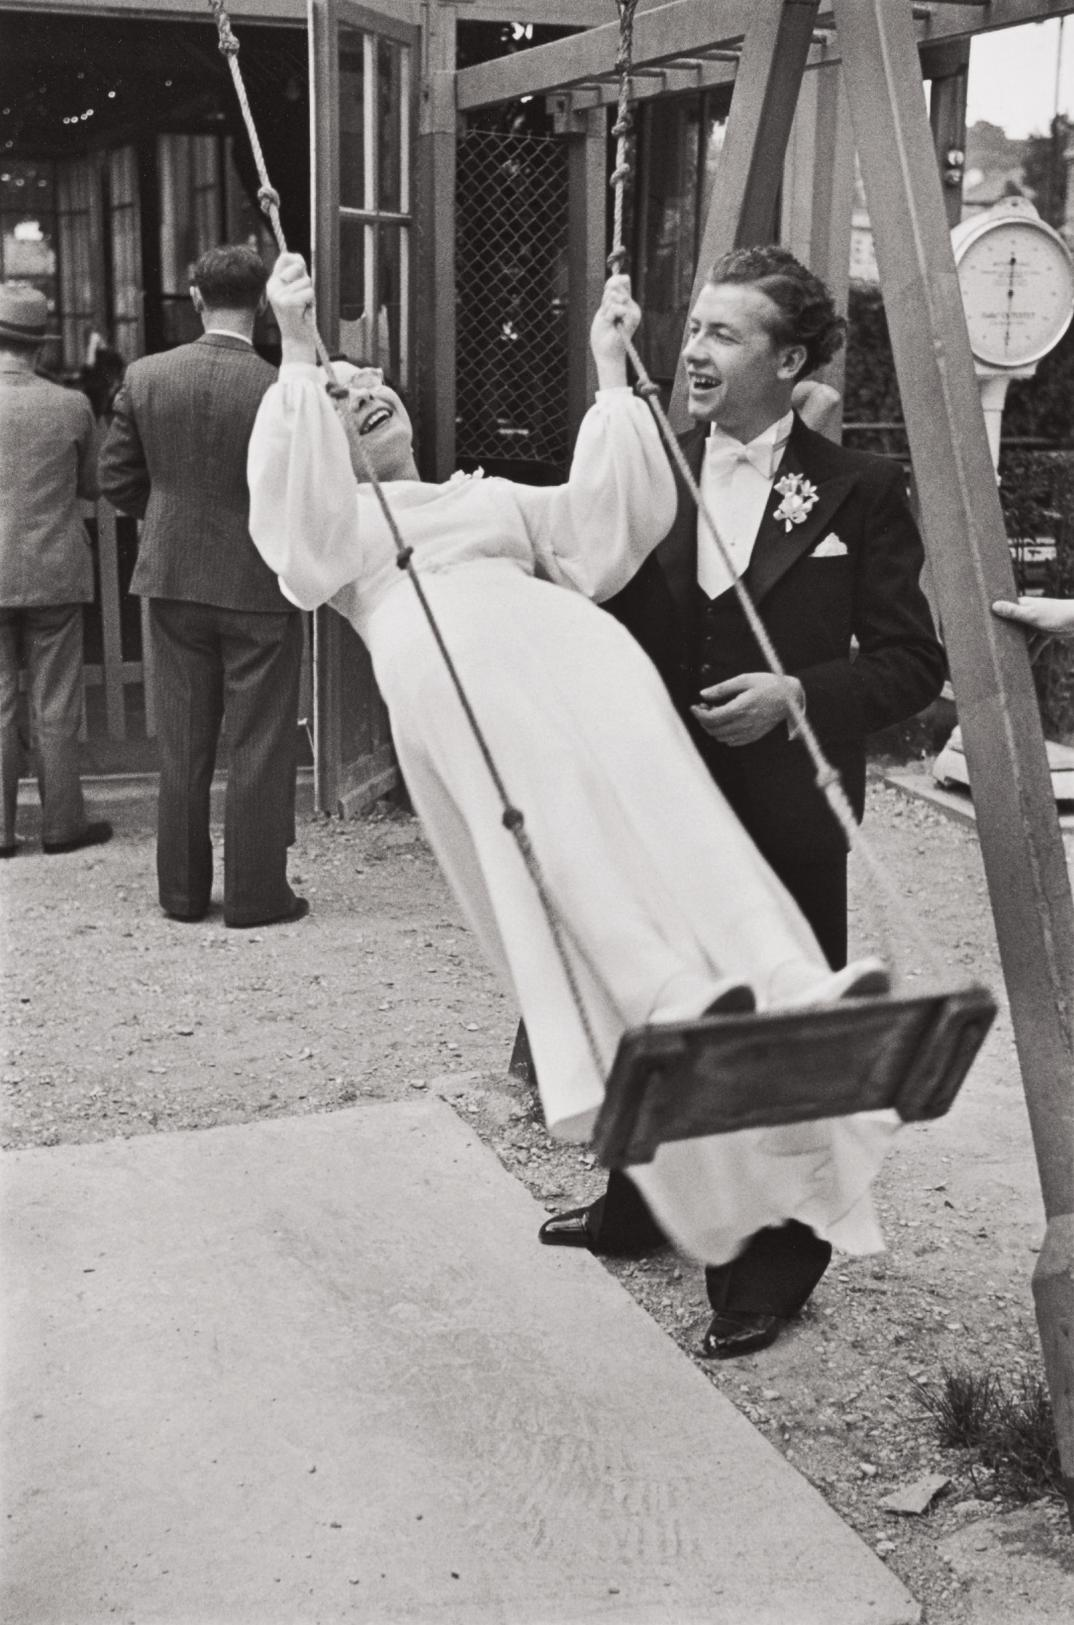 Henri Cartier-Bresson-Joinville-Le-Pont, France (A Newlywed Bride And Groom)-1938